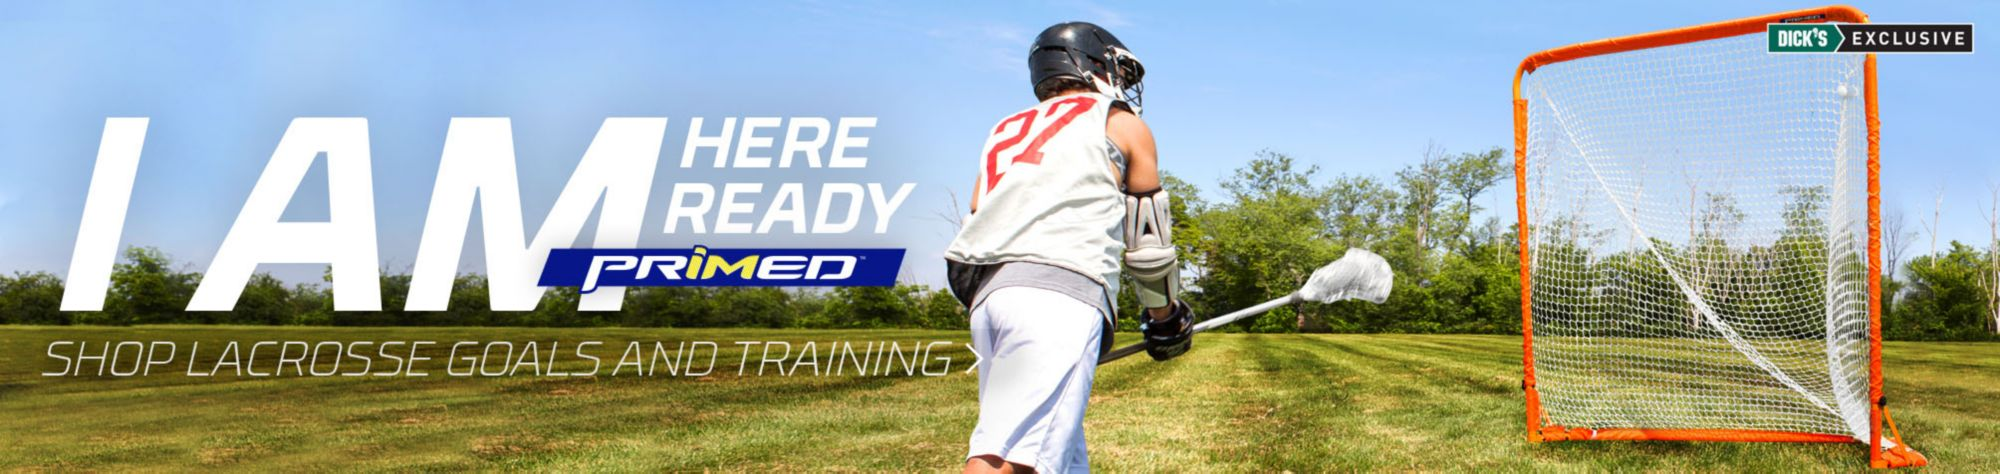 I AM HERE - READY - PRIMED - DICK'S Exclusive | DICK'S Exclusive | Shop Lacrosse Goals And Training